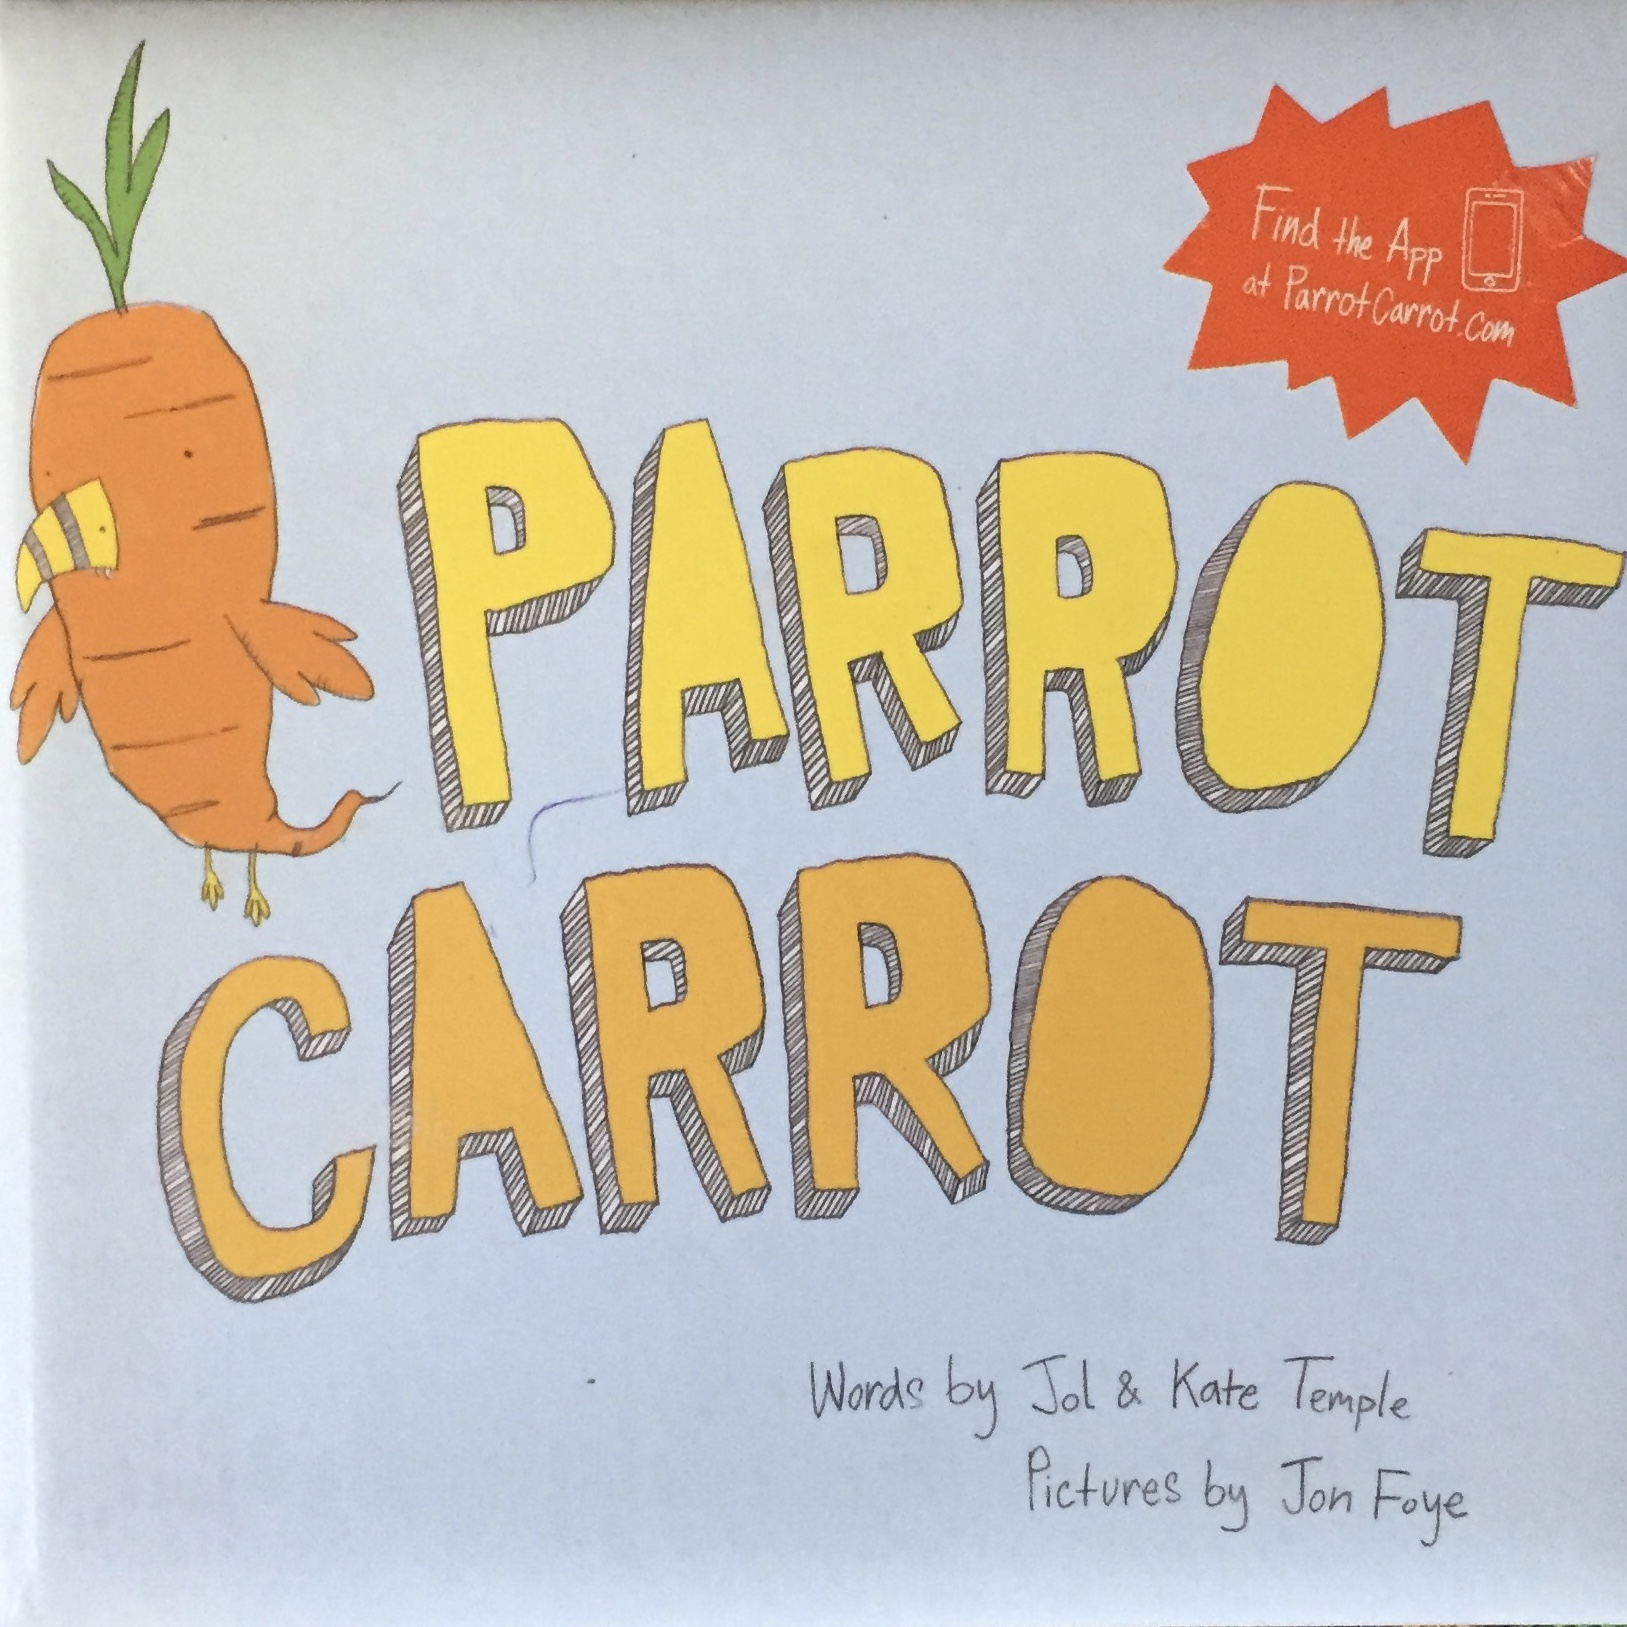 Review - Parrot Carrot